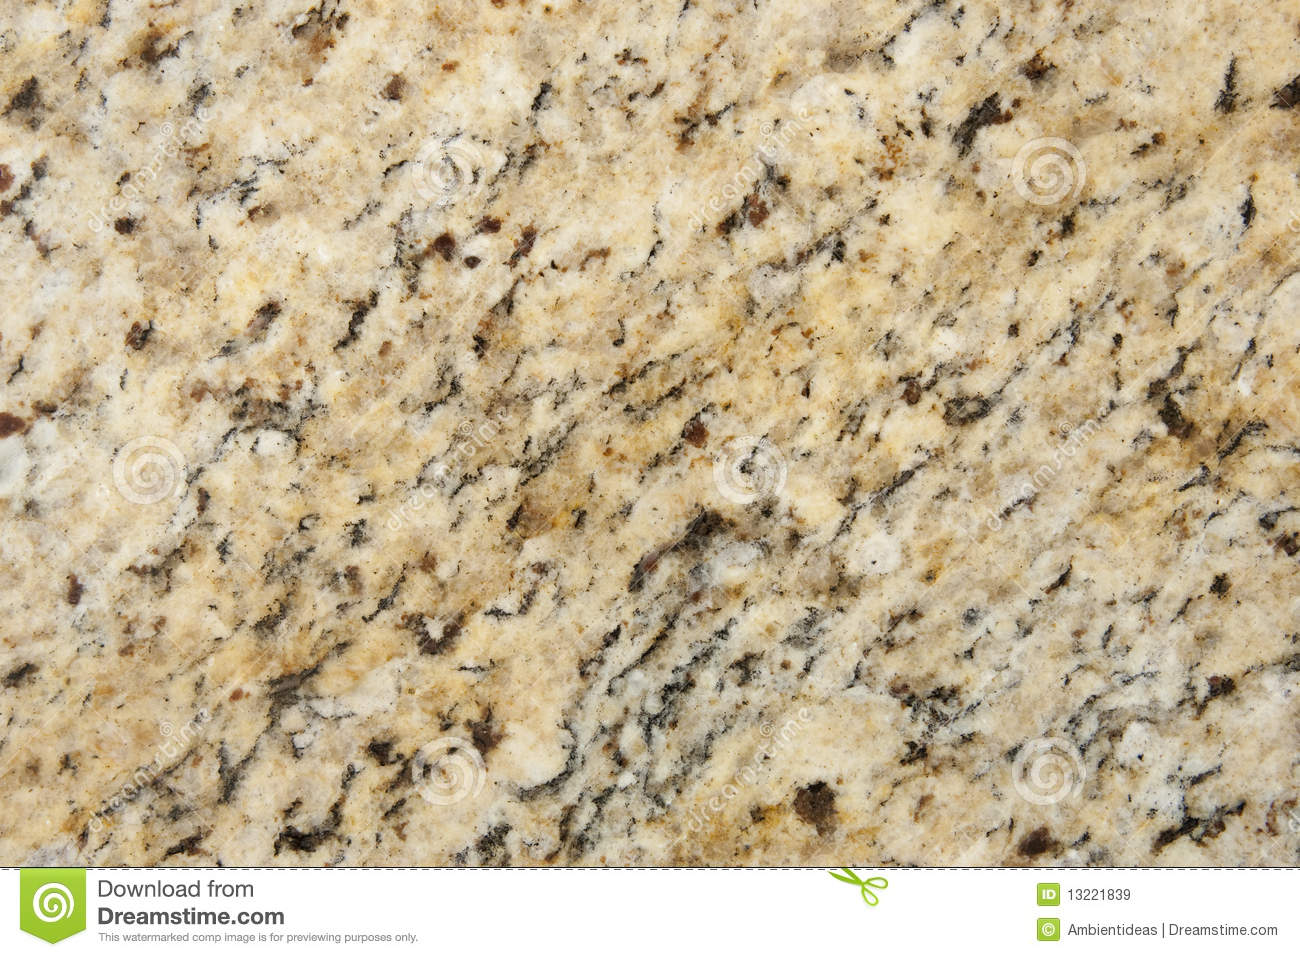 Beige and brown granite surface texture royalty free stock for Photo de granite